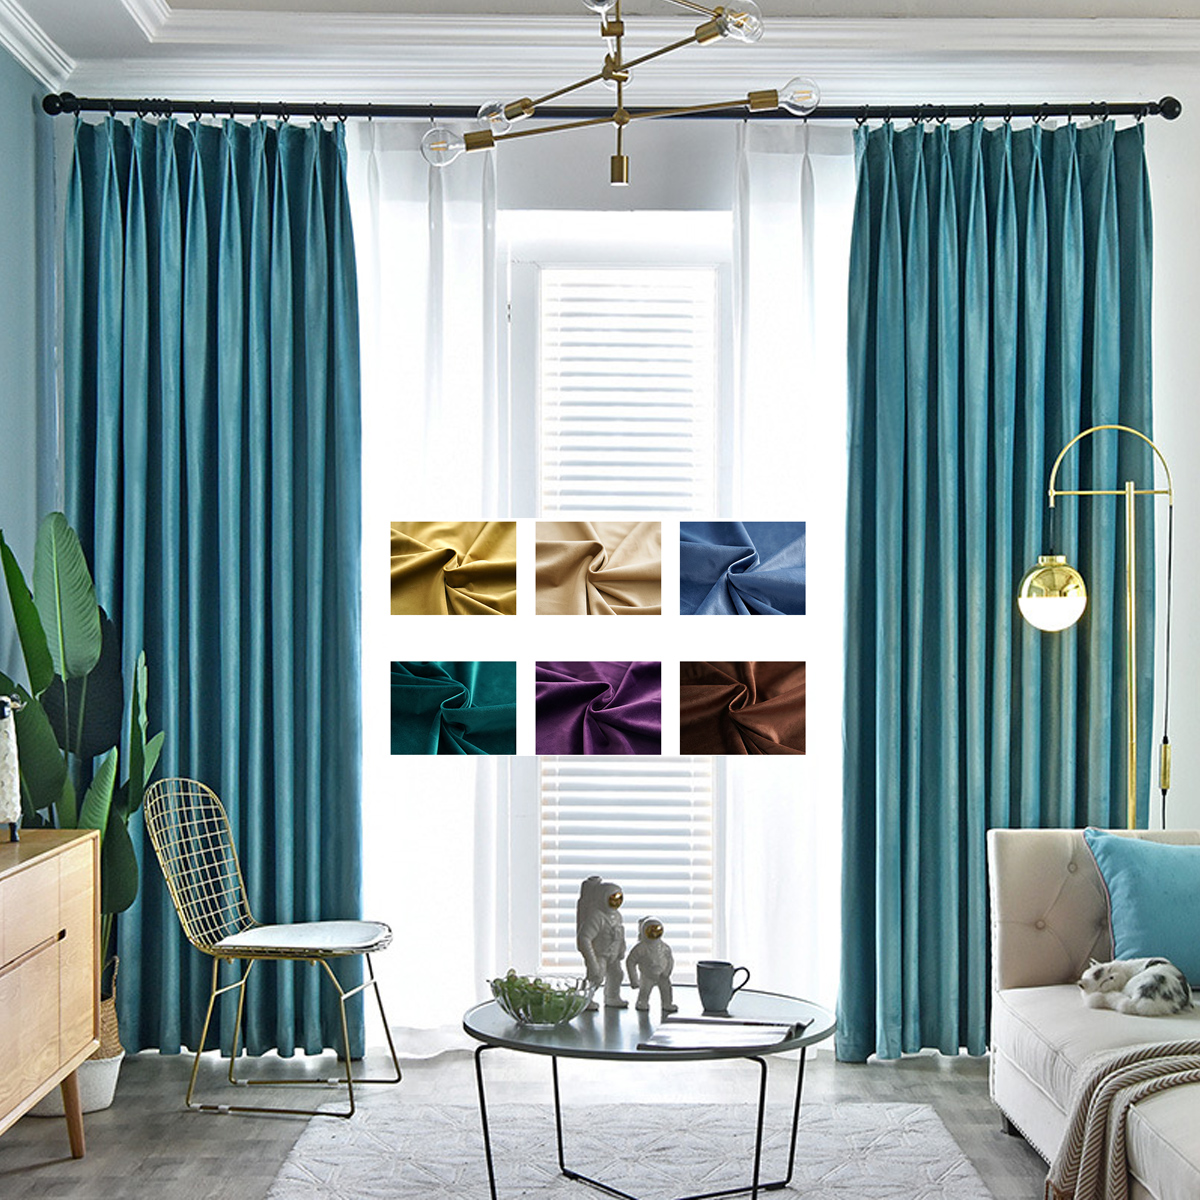 Blackout Luxury Velvet Curtains For Living Room Bedroom Solid Plain Window Door Curtain Drape Tulle Green Blue Brown Yellow